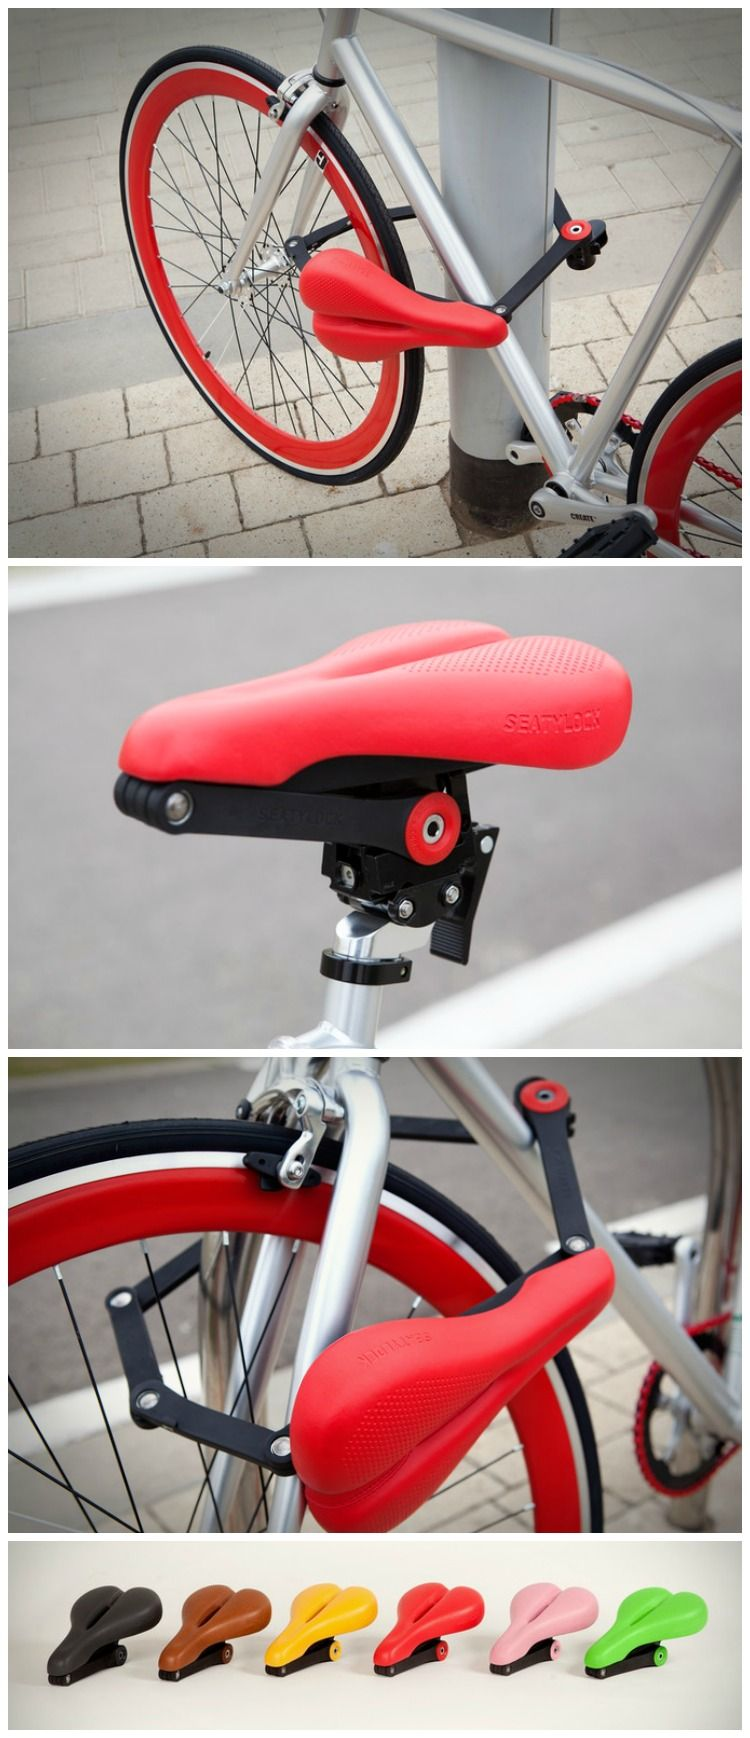 The Seatylock is a bicycle saddle that transforms into a solid lock and back again. Never worry about the possibility of bike theft again. #cycling #biking